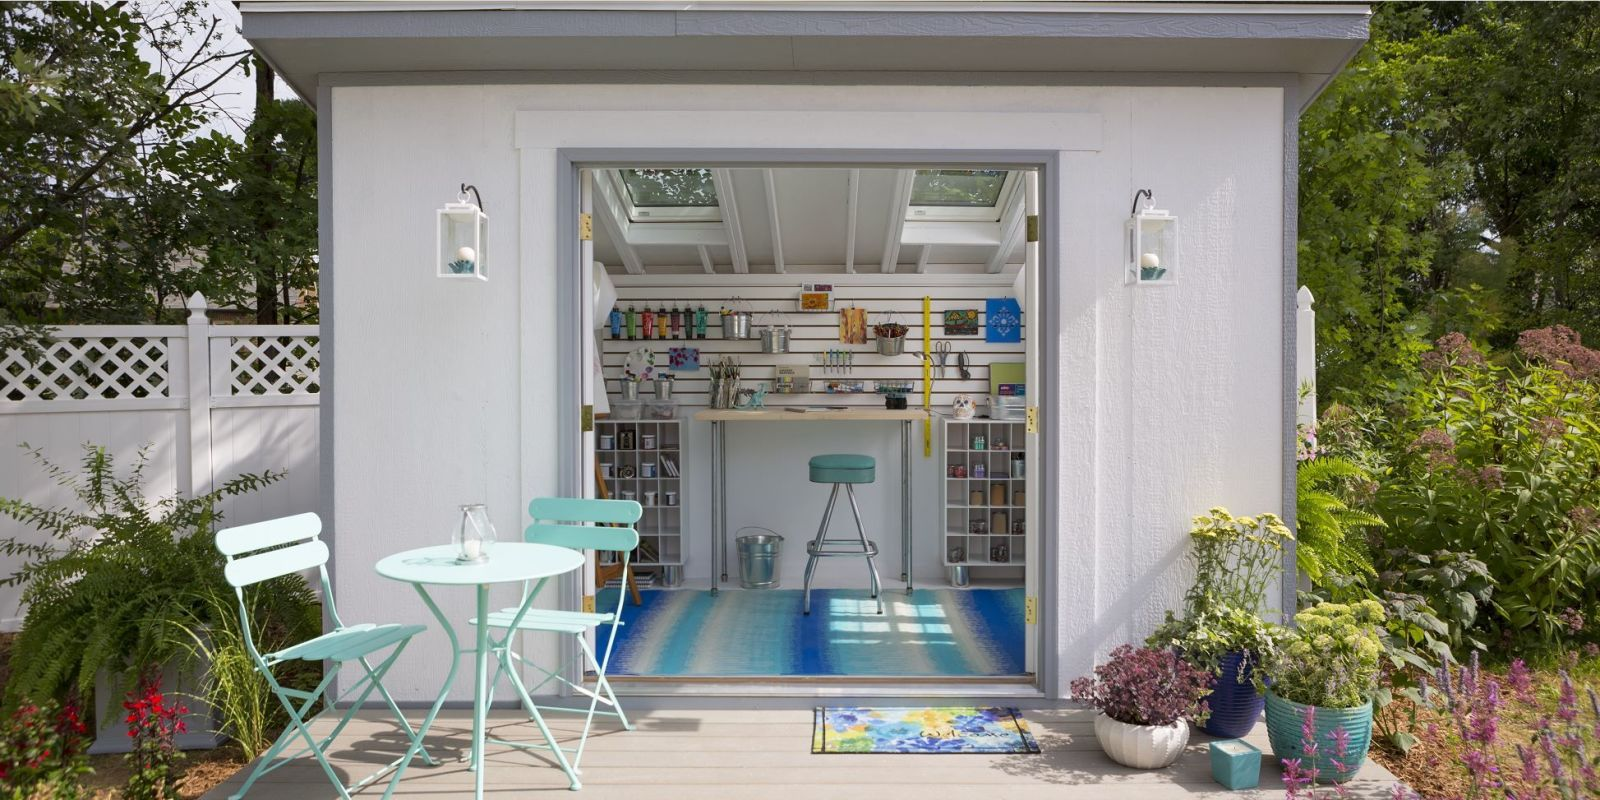 craft ideas for garage sales - She Sheds The Secret to Creating Your Own She Shed